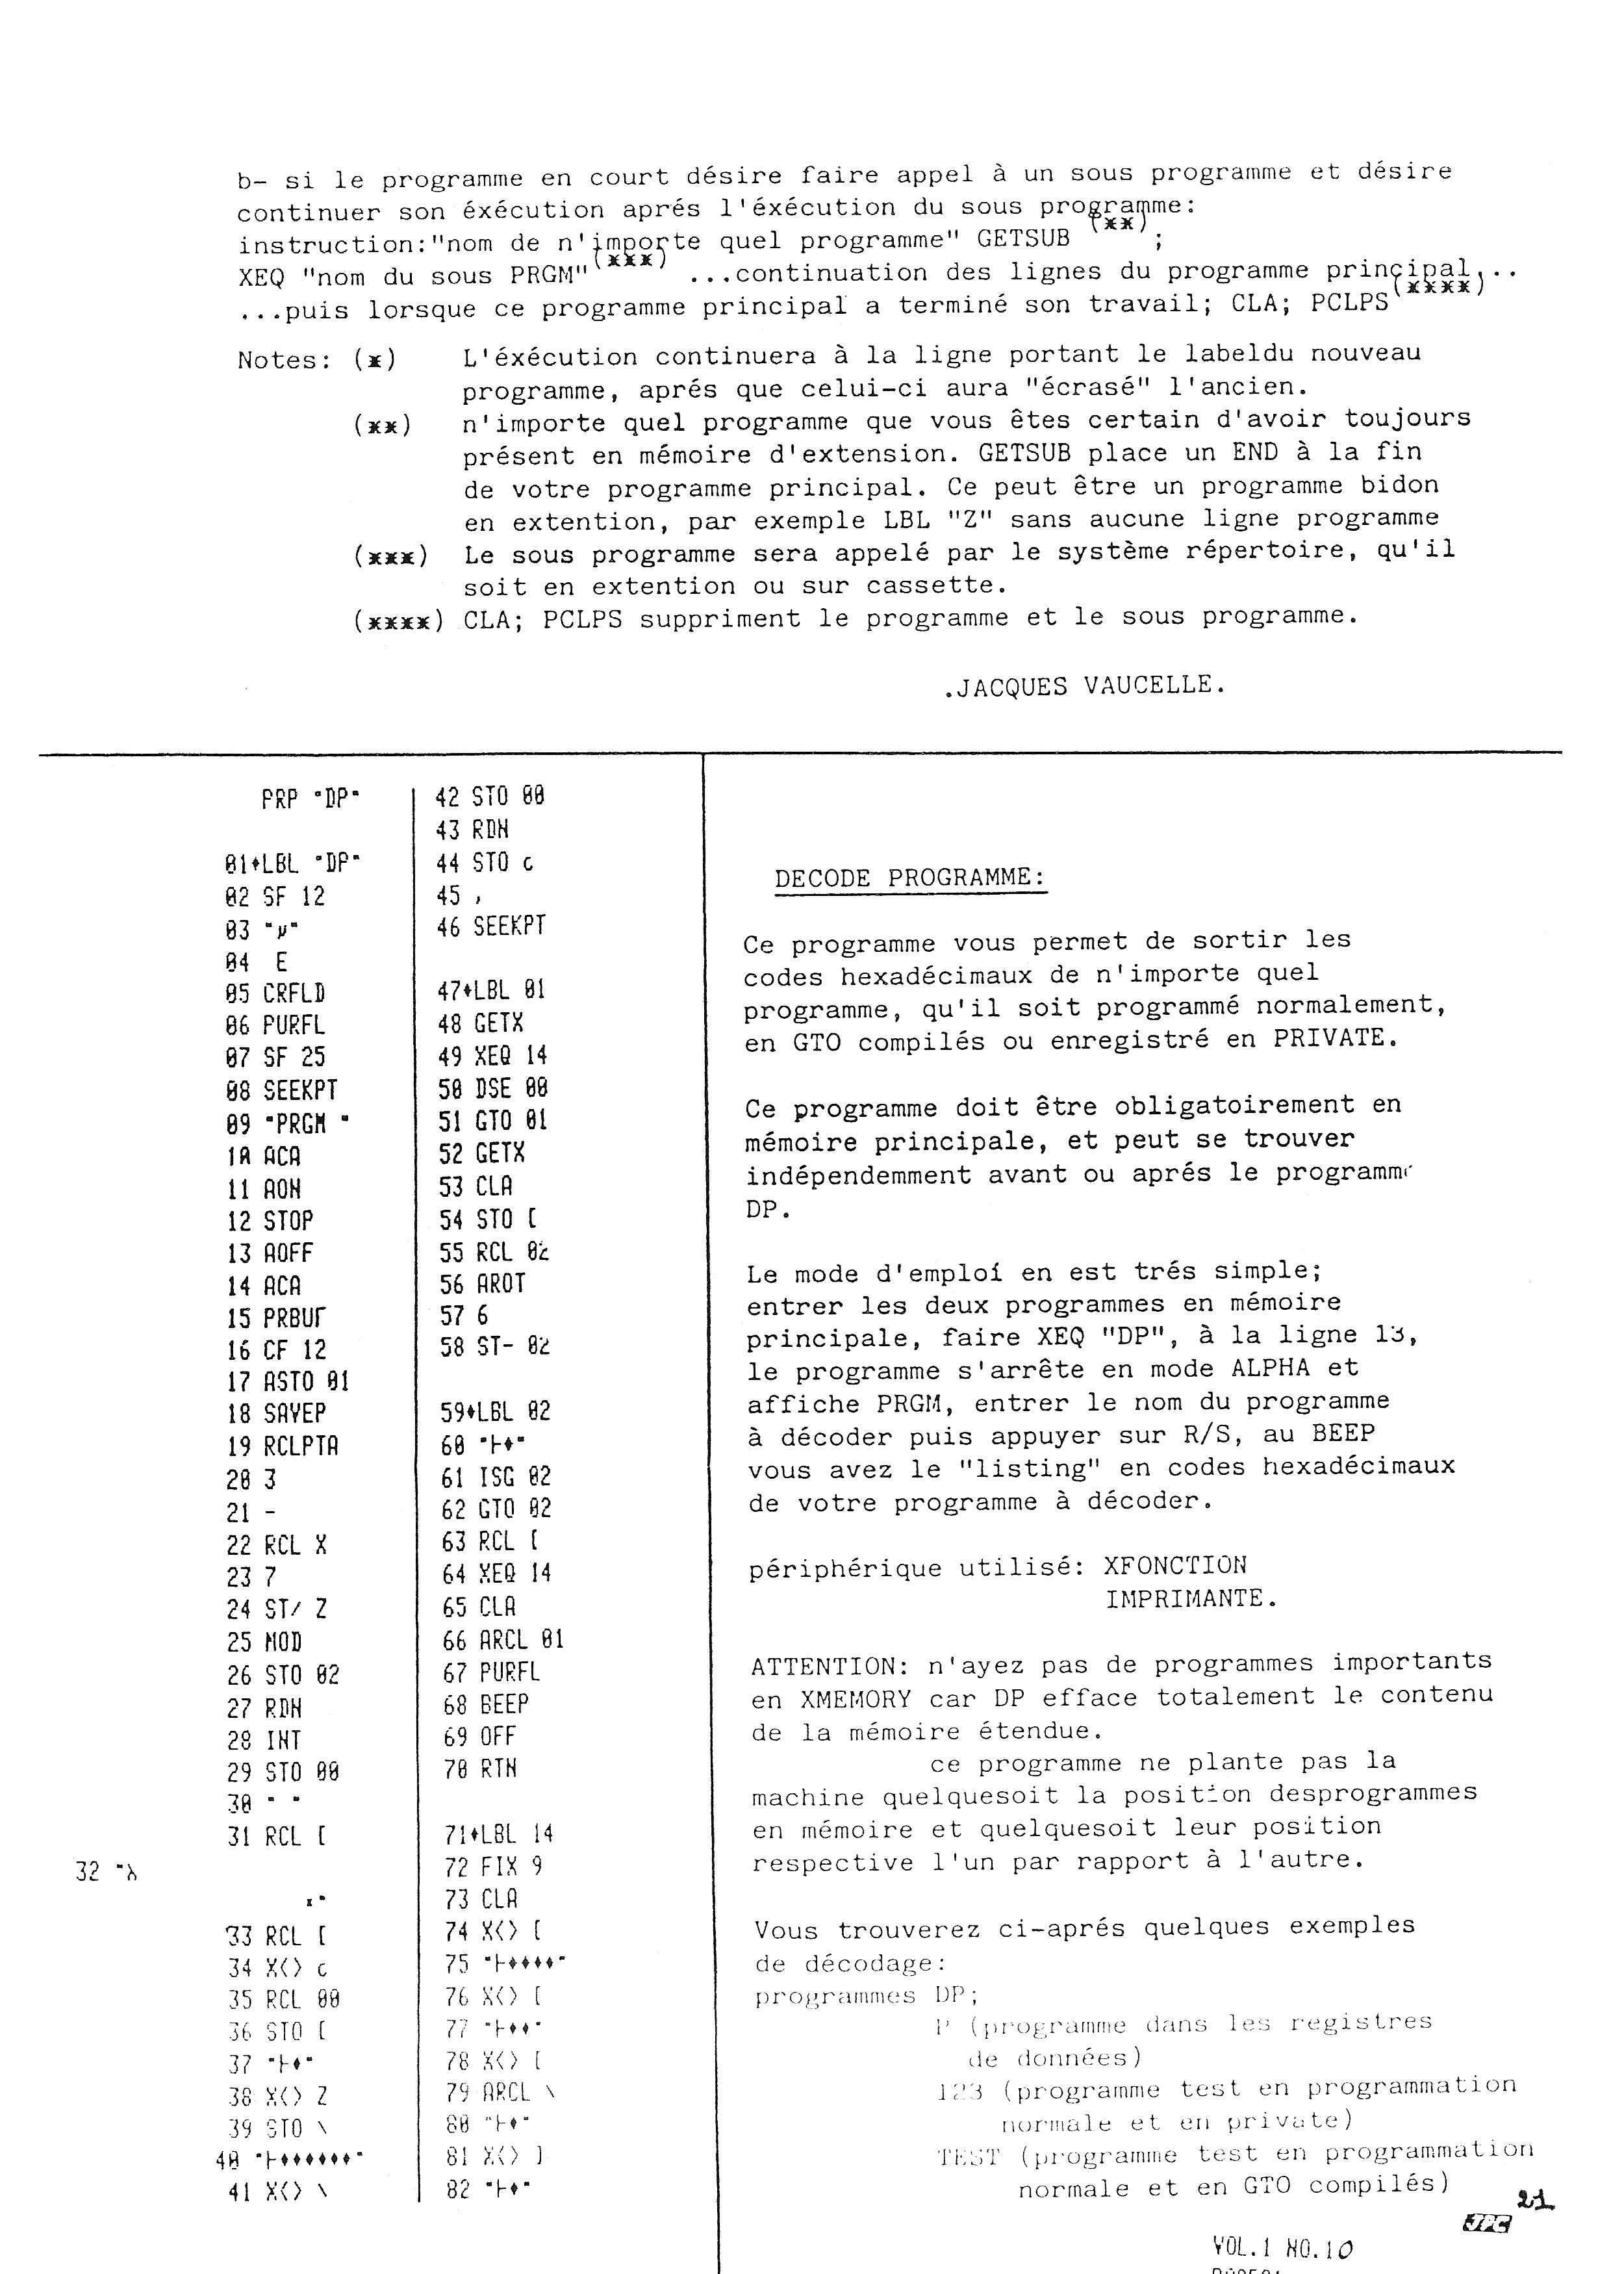 Jp-10-page-21-1000